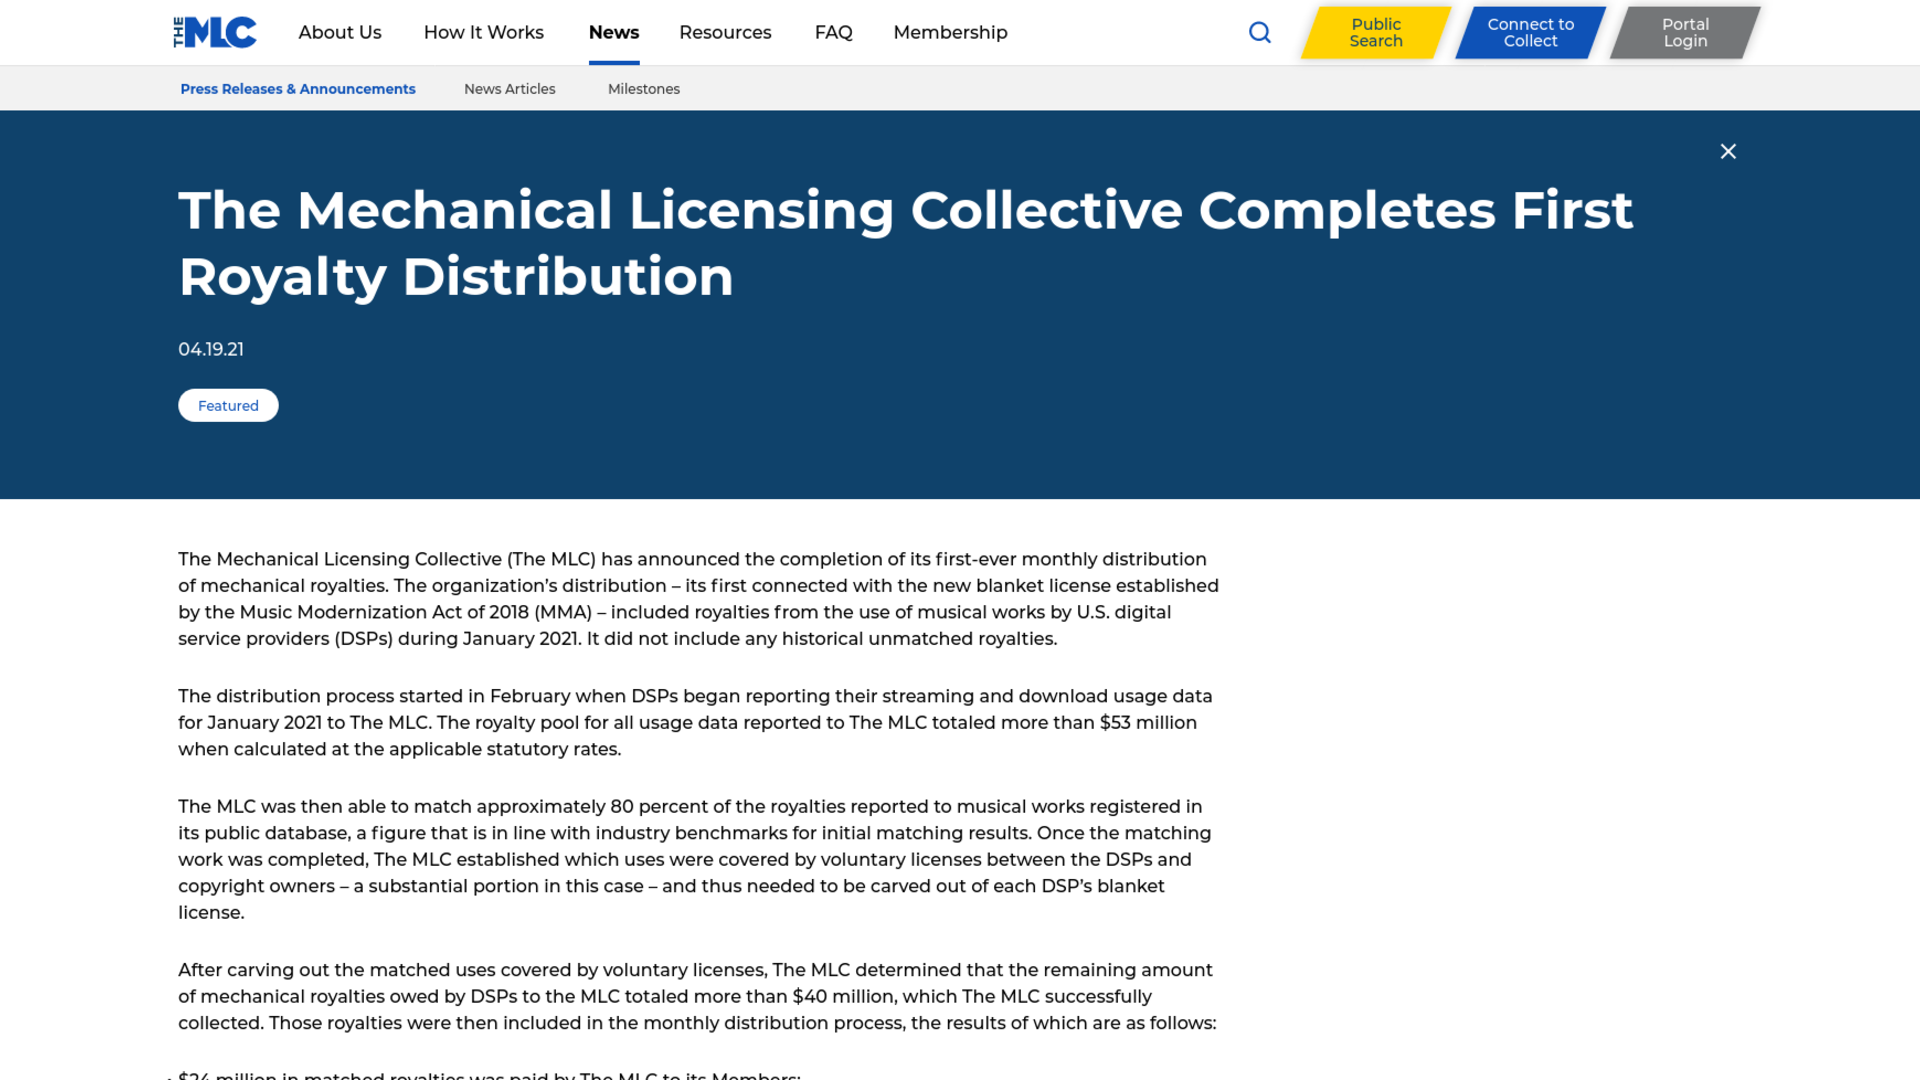 Fairness Rocks News The Mechanical Licensing Collective Completes First Royalty Distribution